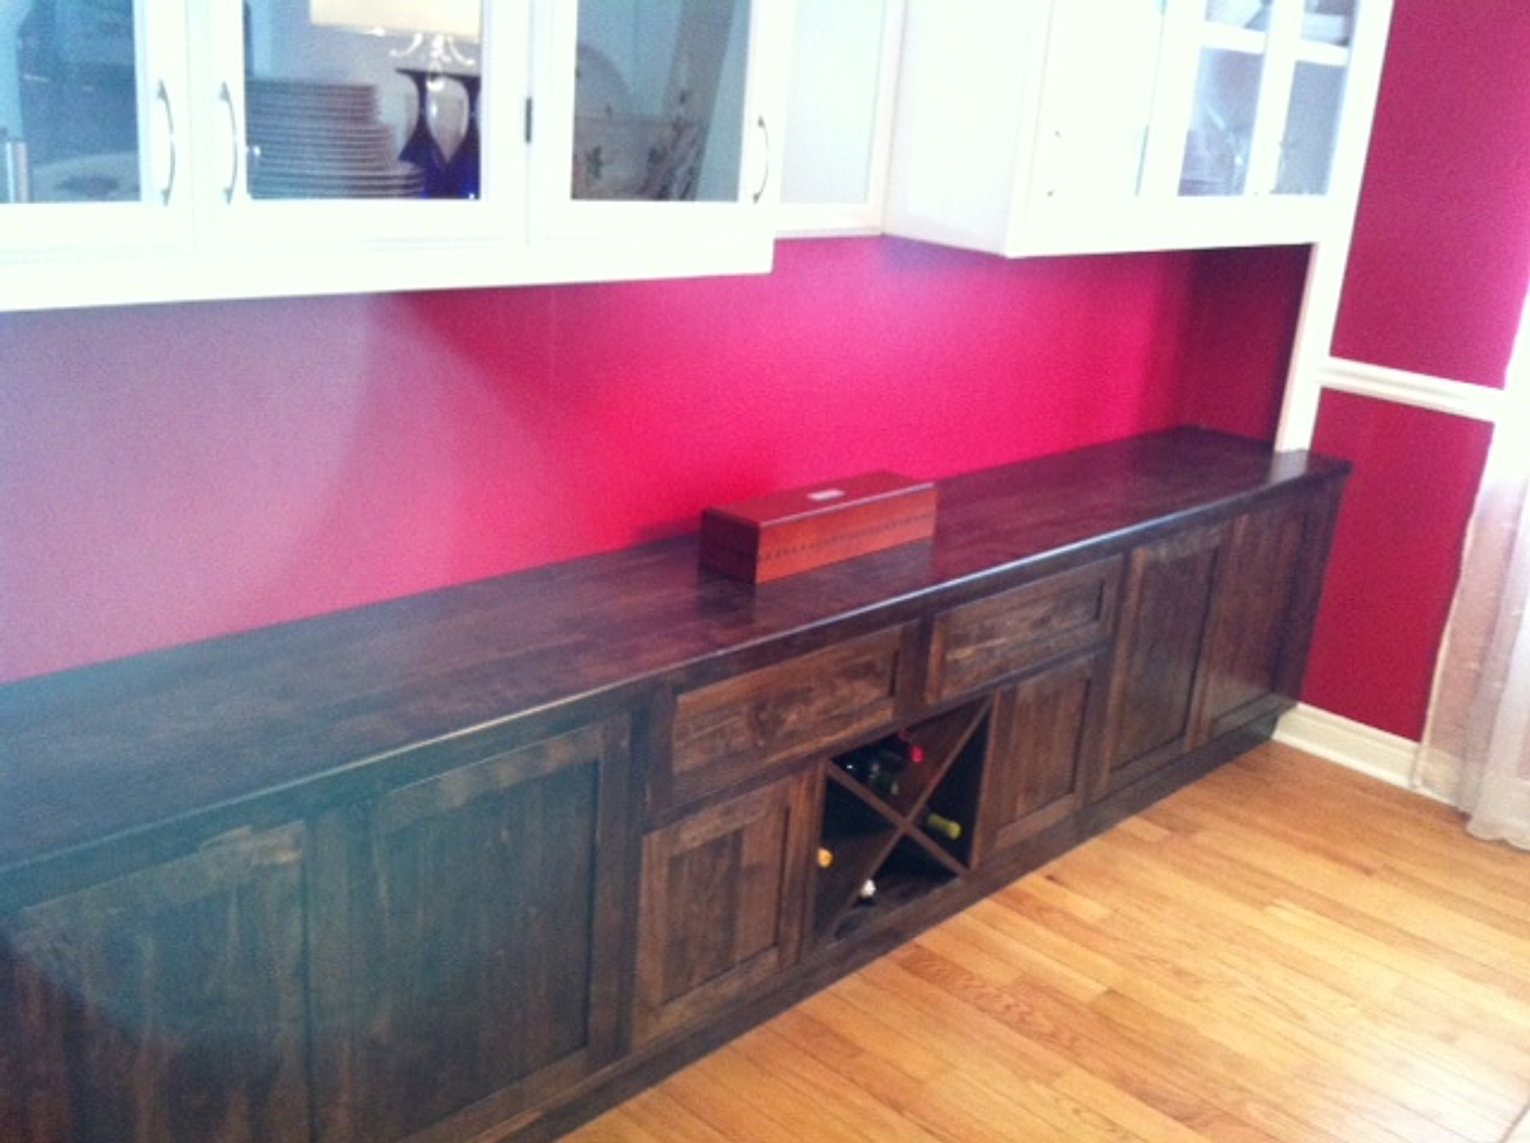 End Grain Cabinetry Co. | Waterloo and Kitchener cabinet